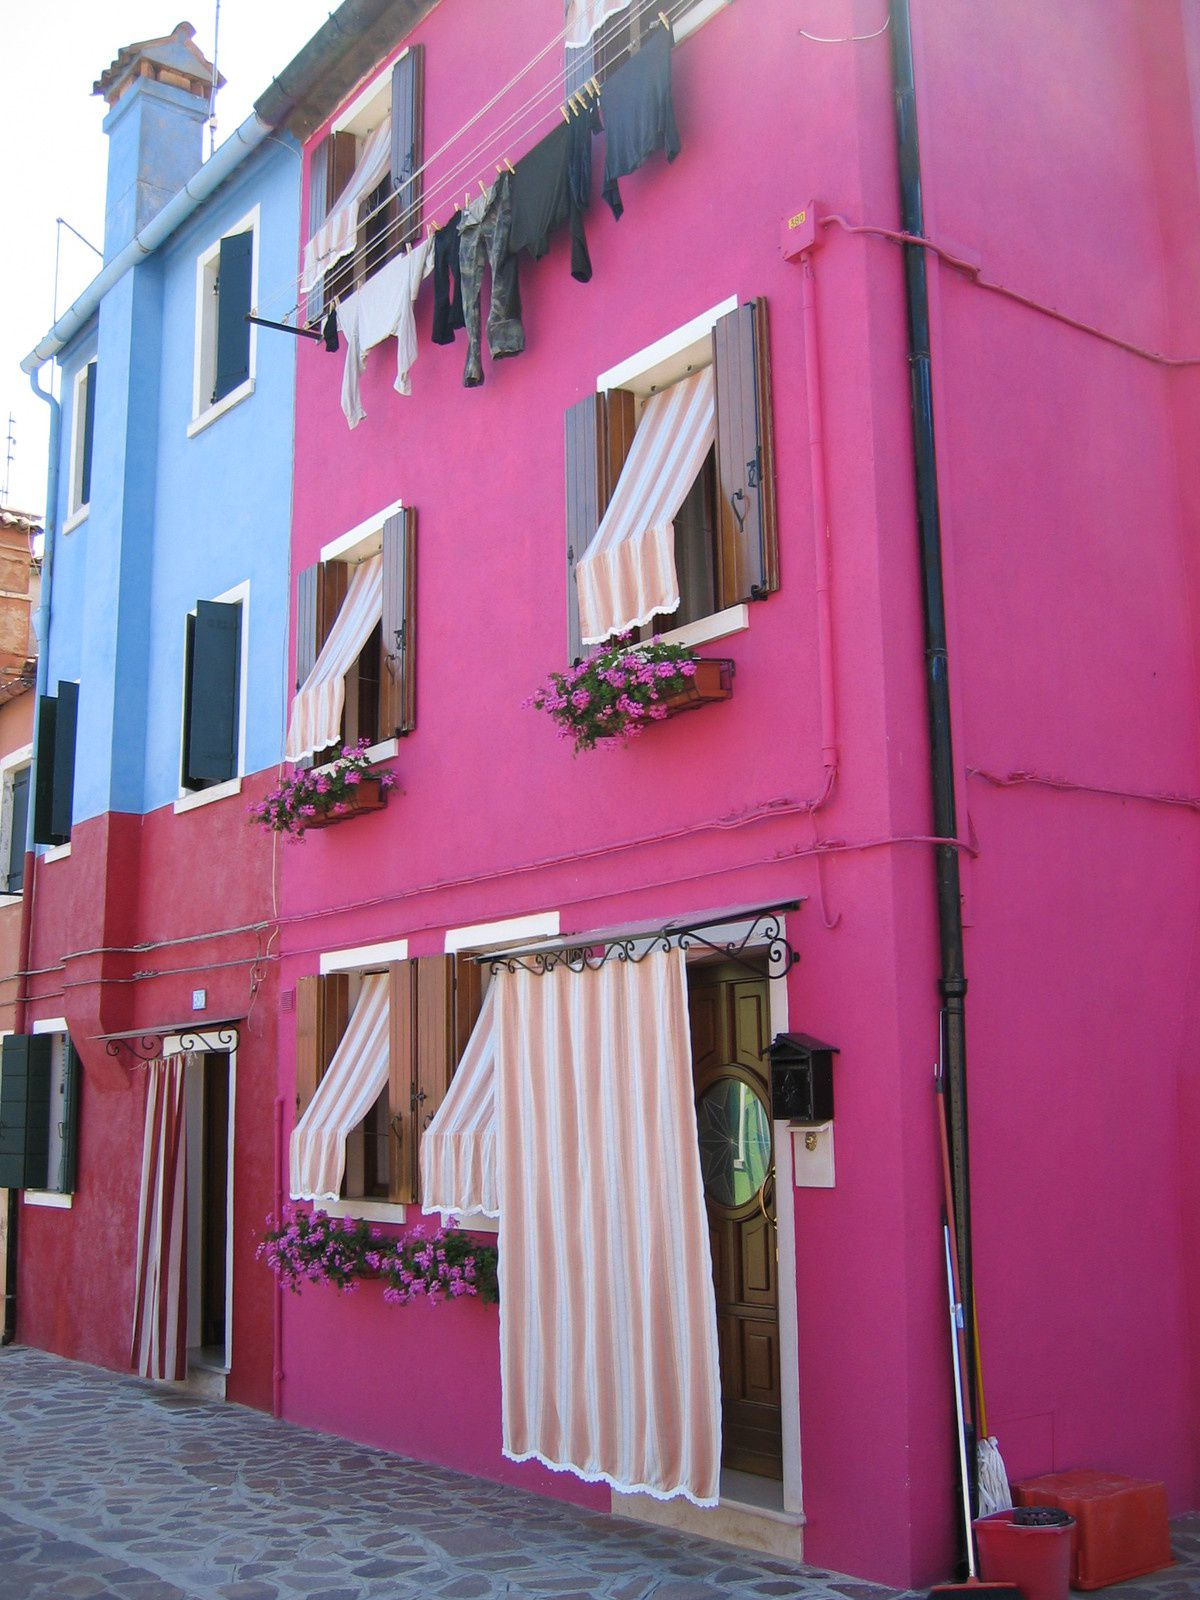 Burano-juin 2005 Photos by Chry